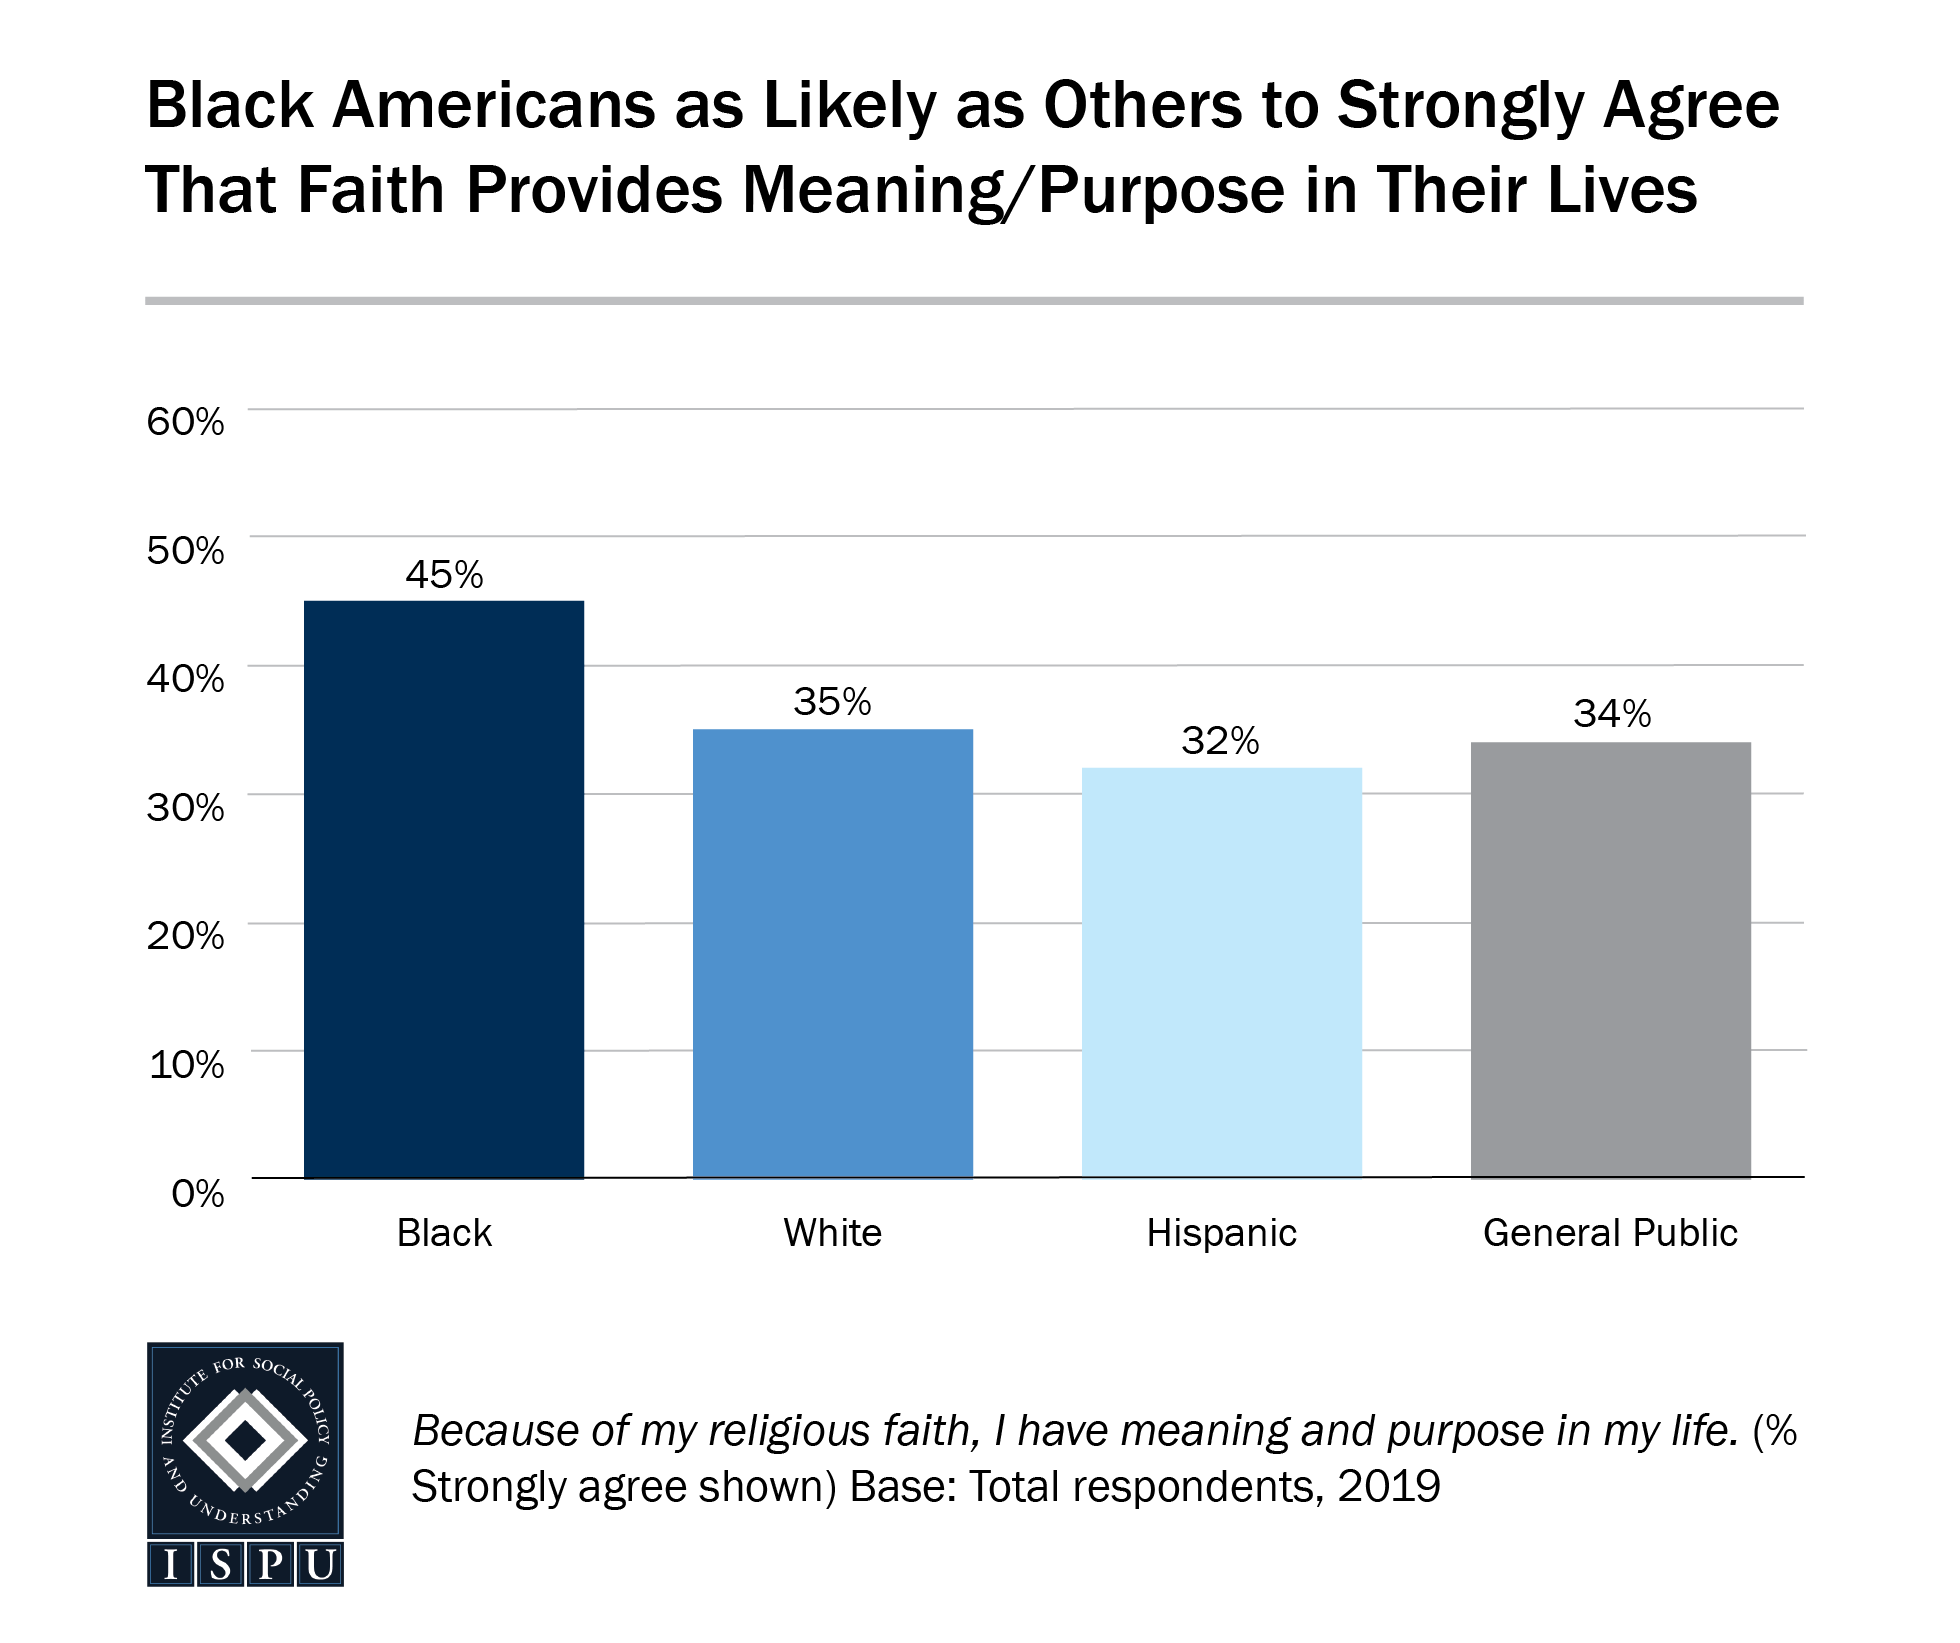 A bar graph showing that Black Americans are as likely as others to strongly agree that faith provides meaning/purpose in their lives